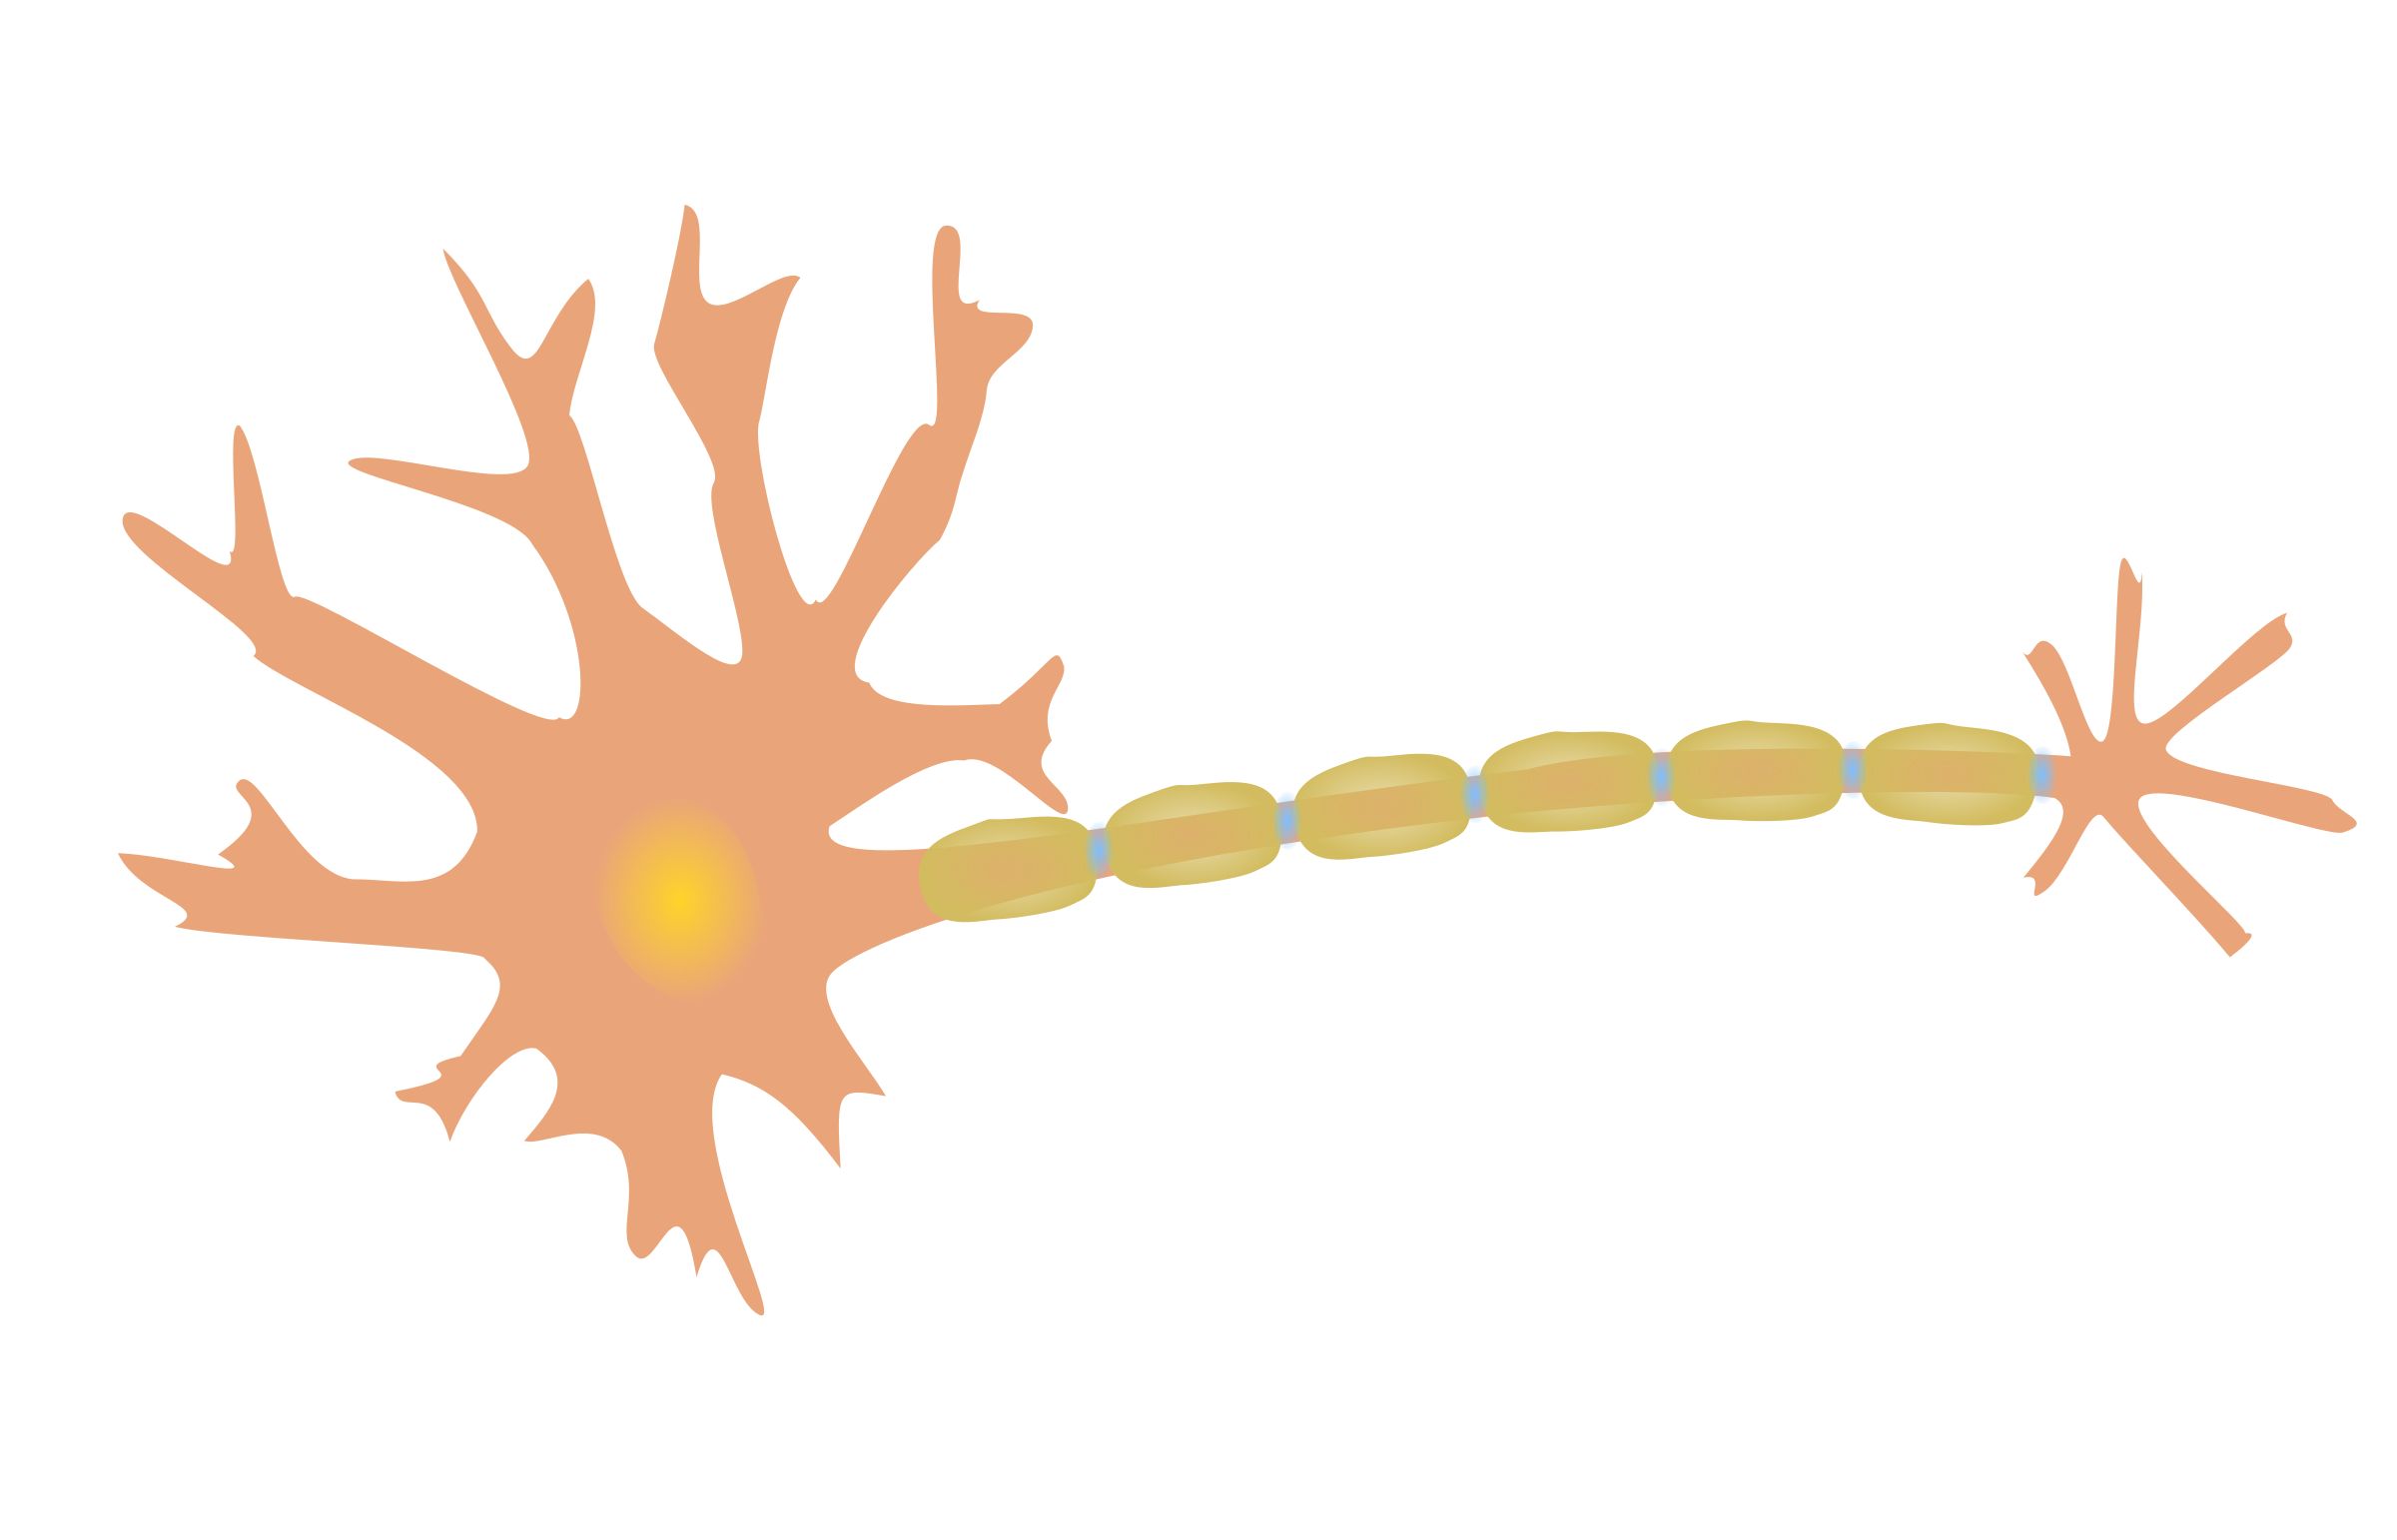 single-neuron by phreed